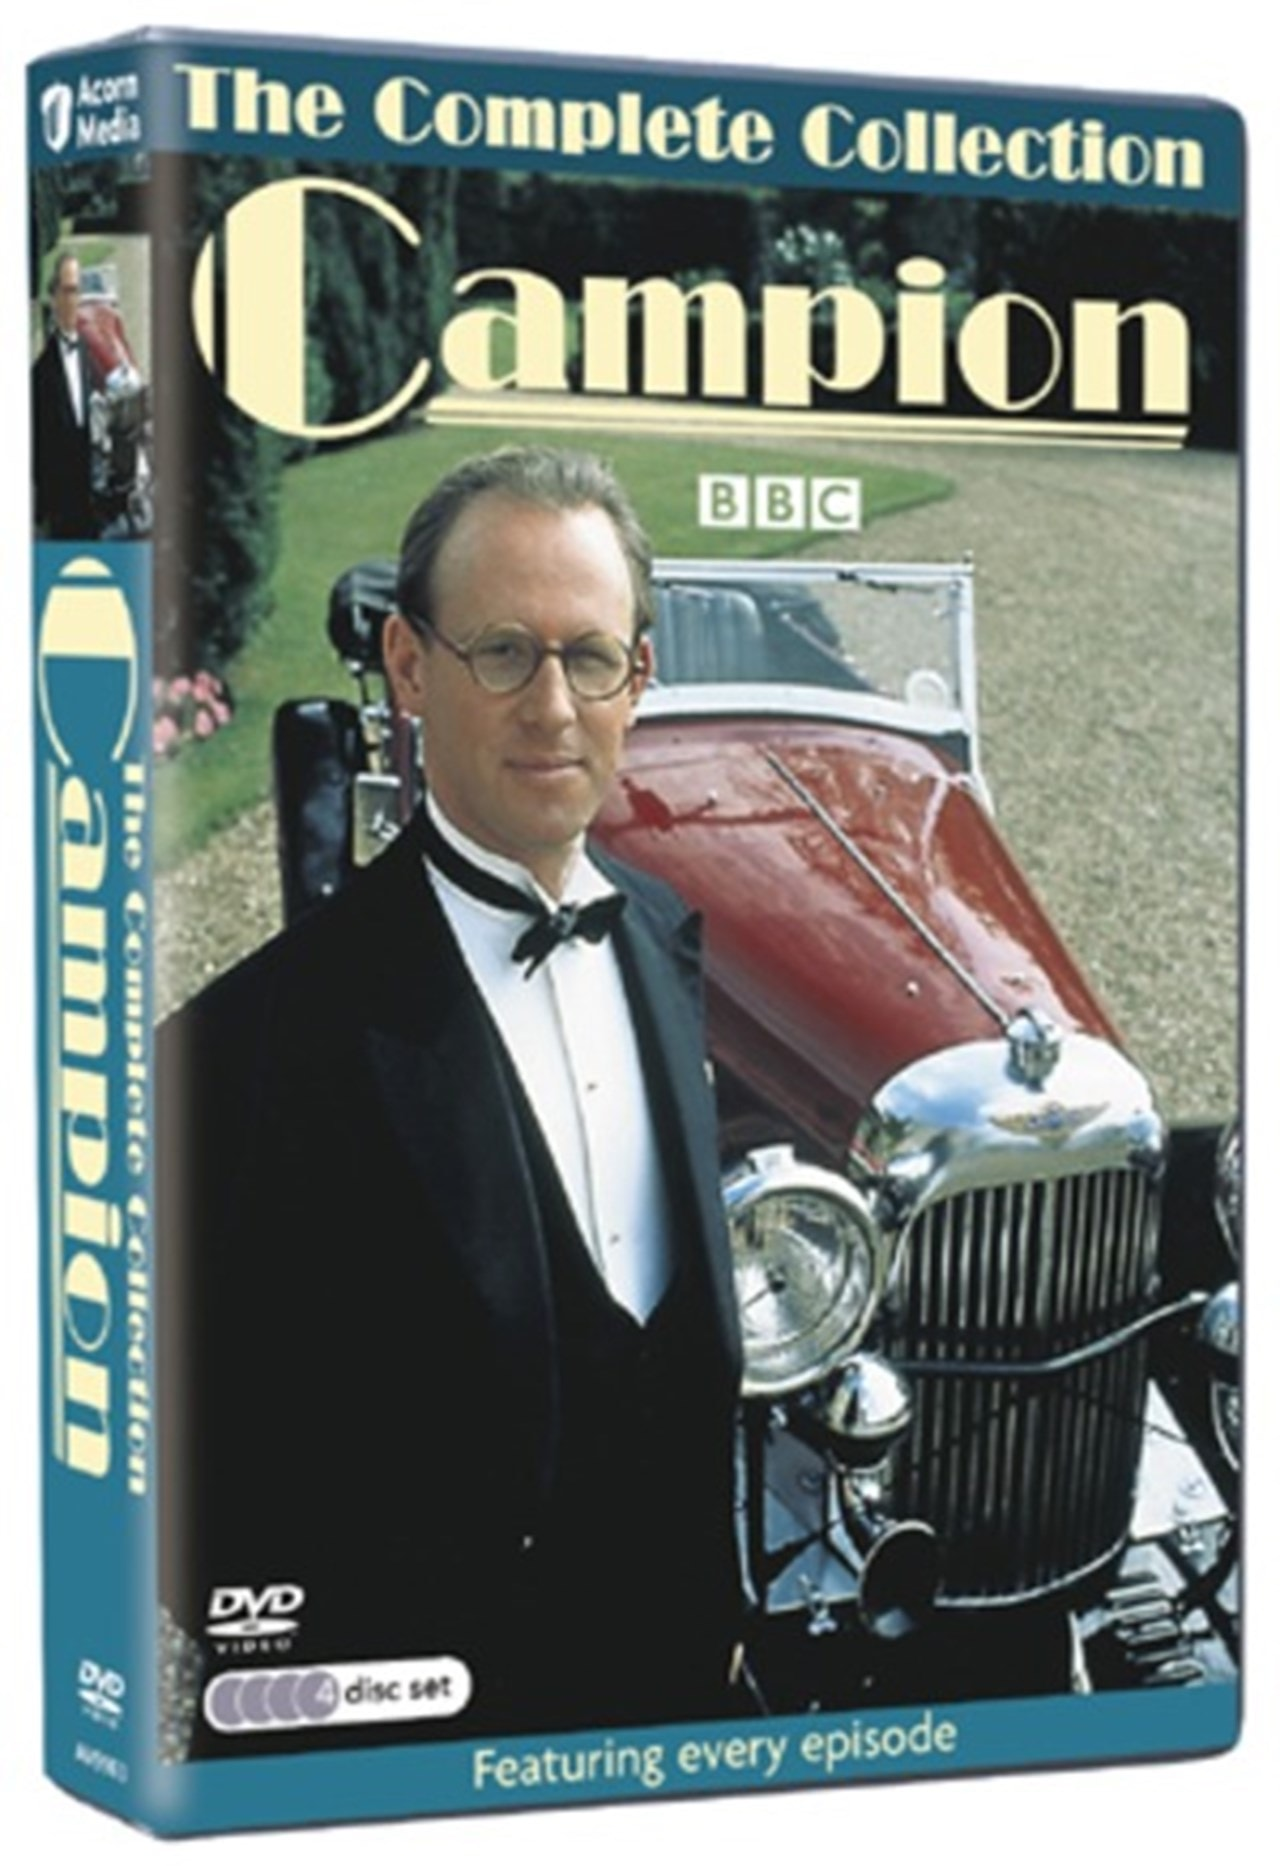 Campion: The Complete Collection - 1